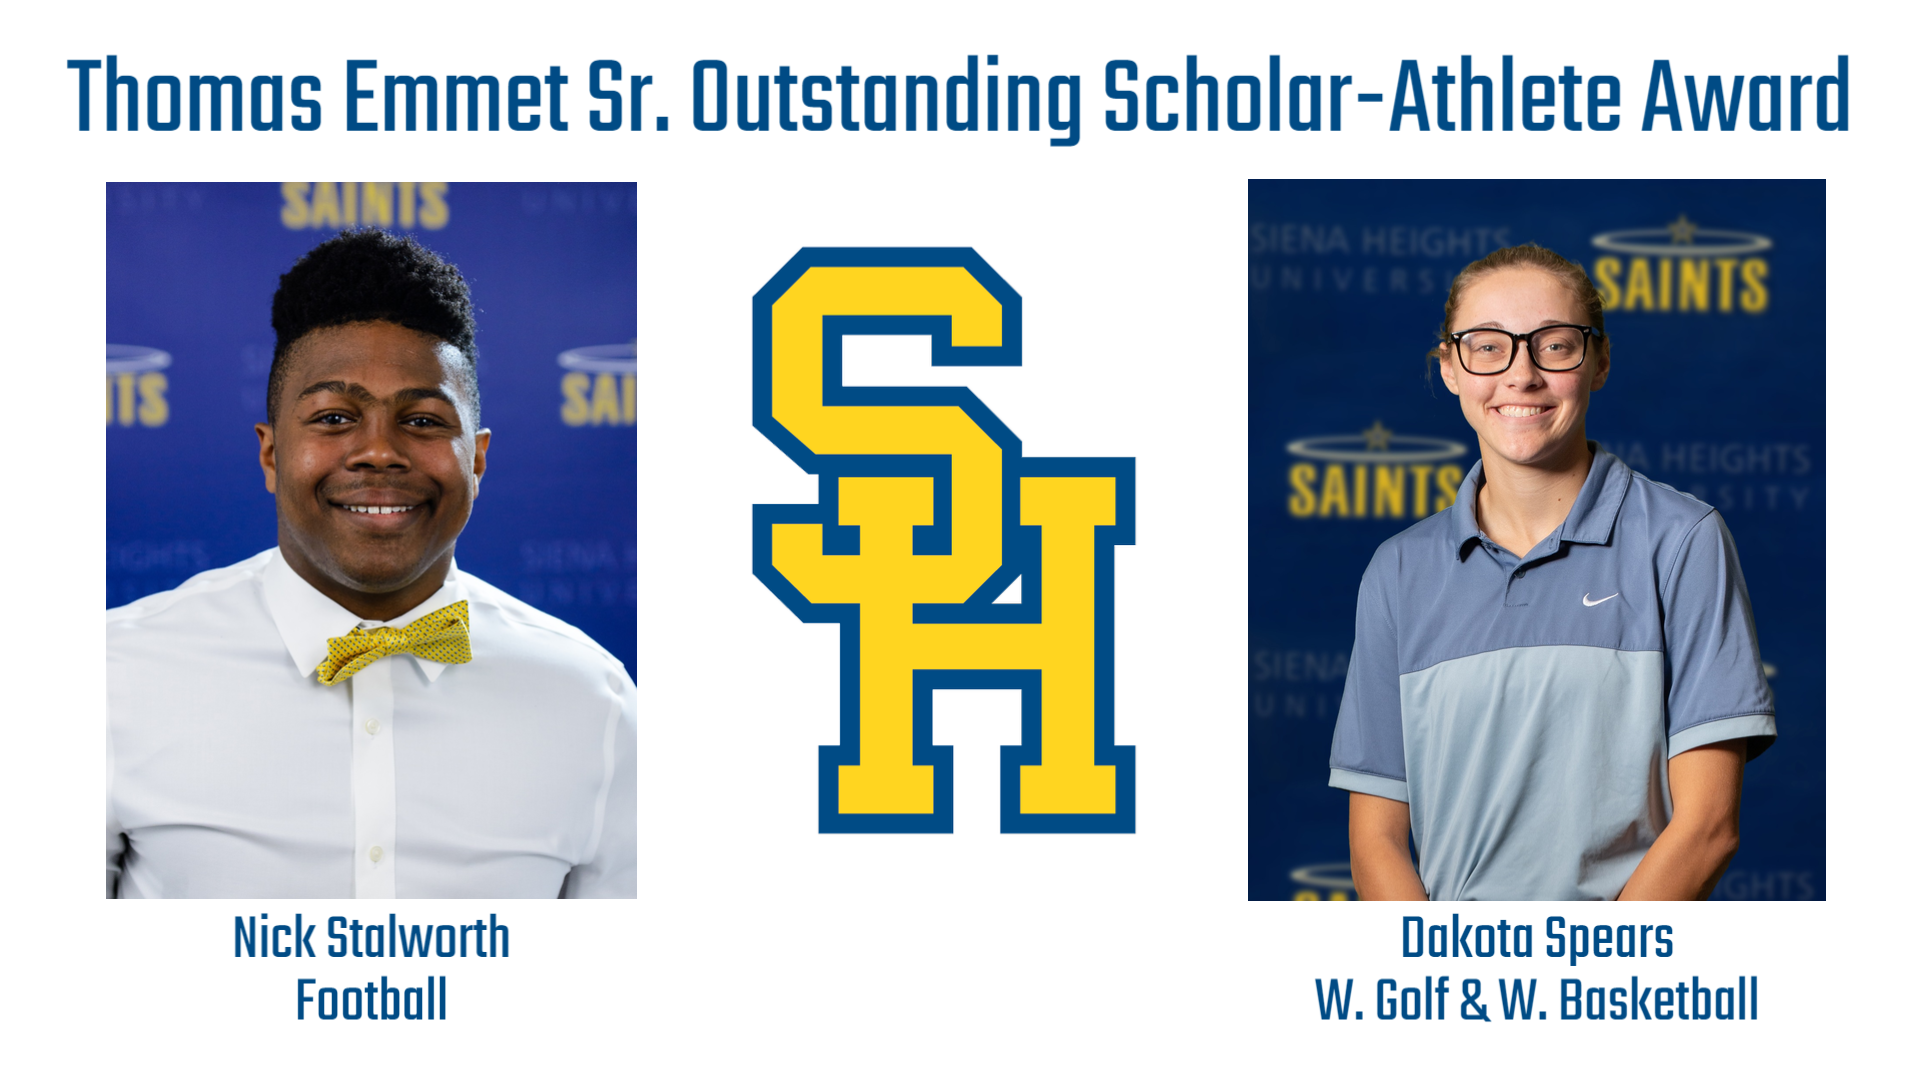 Nick Stalworth and Dakota Spears Awarded Annual Thomas Emmet Sr. Award